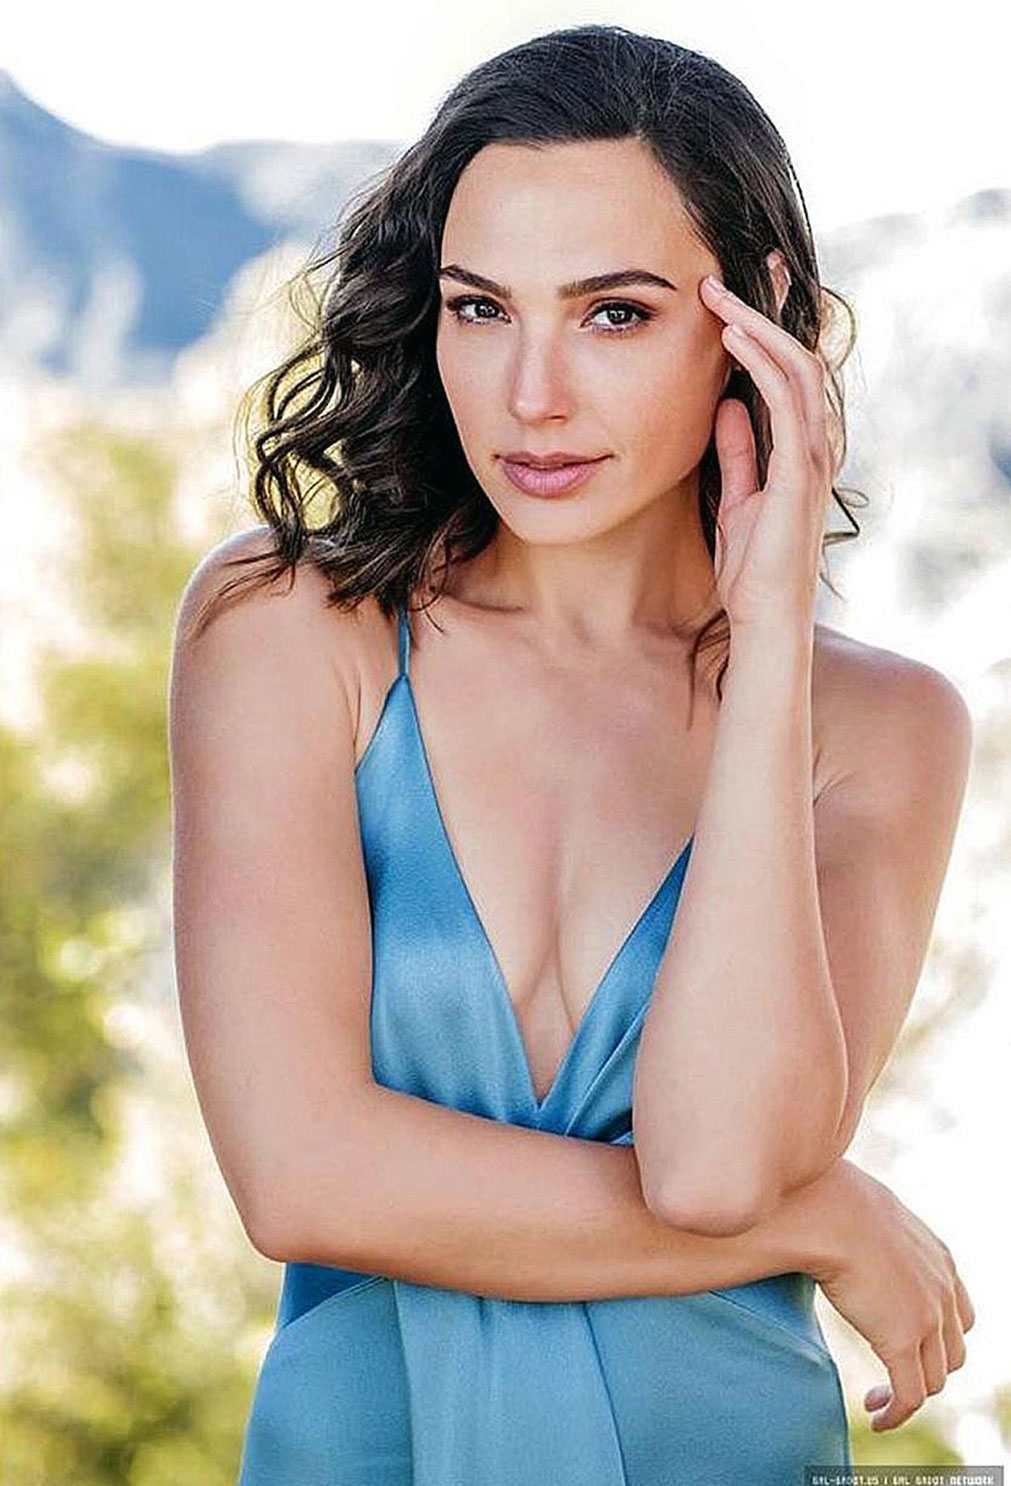 Gal Gadot Nude and Hot Photos - Leaked Diaries